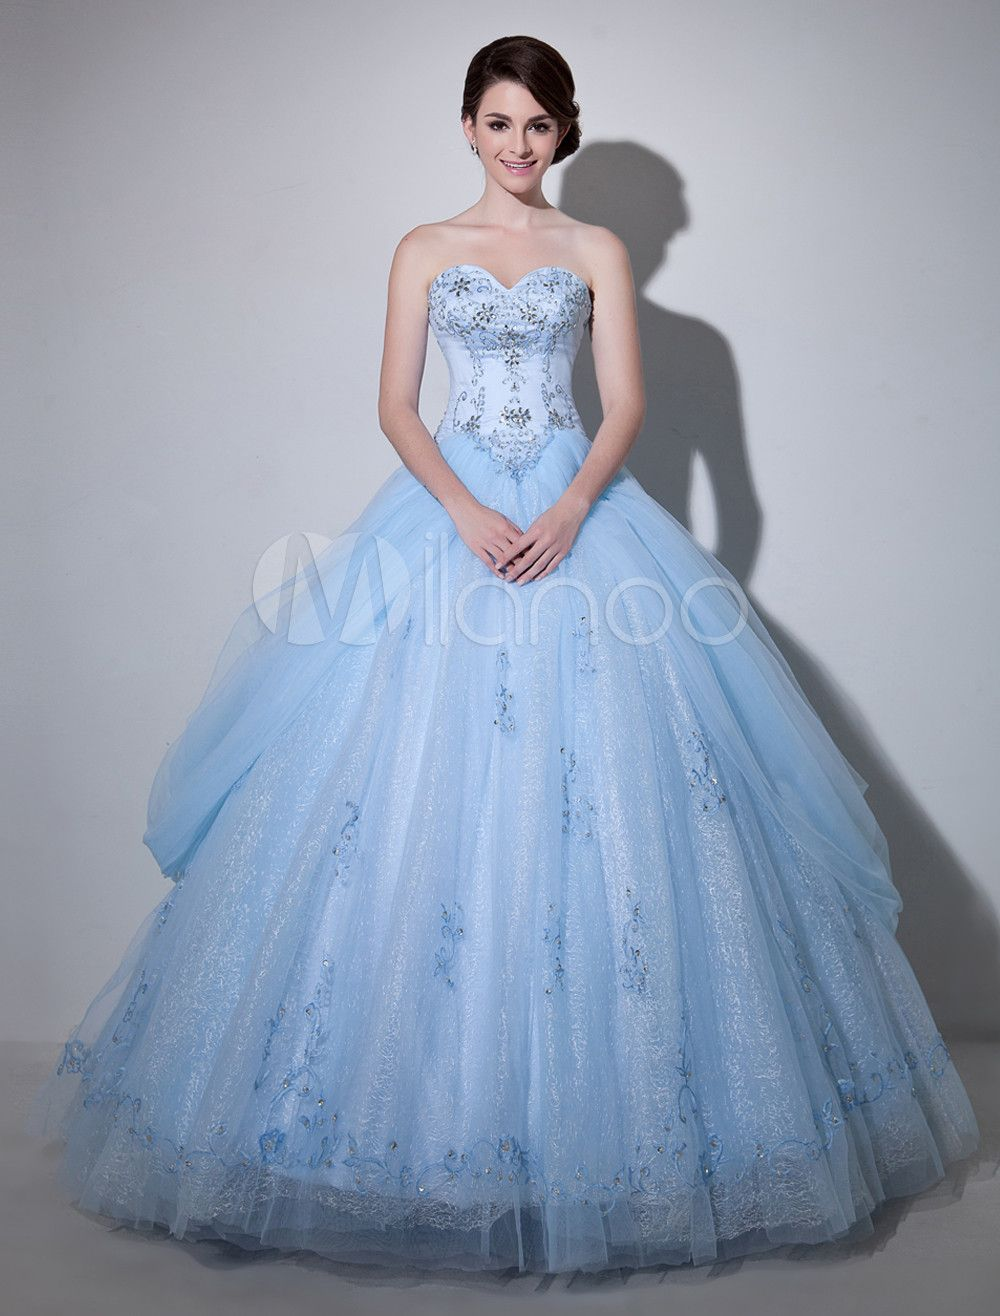 Light sky blue sweetheart ball gown strapless embroidered bridal